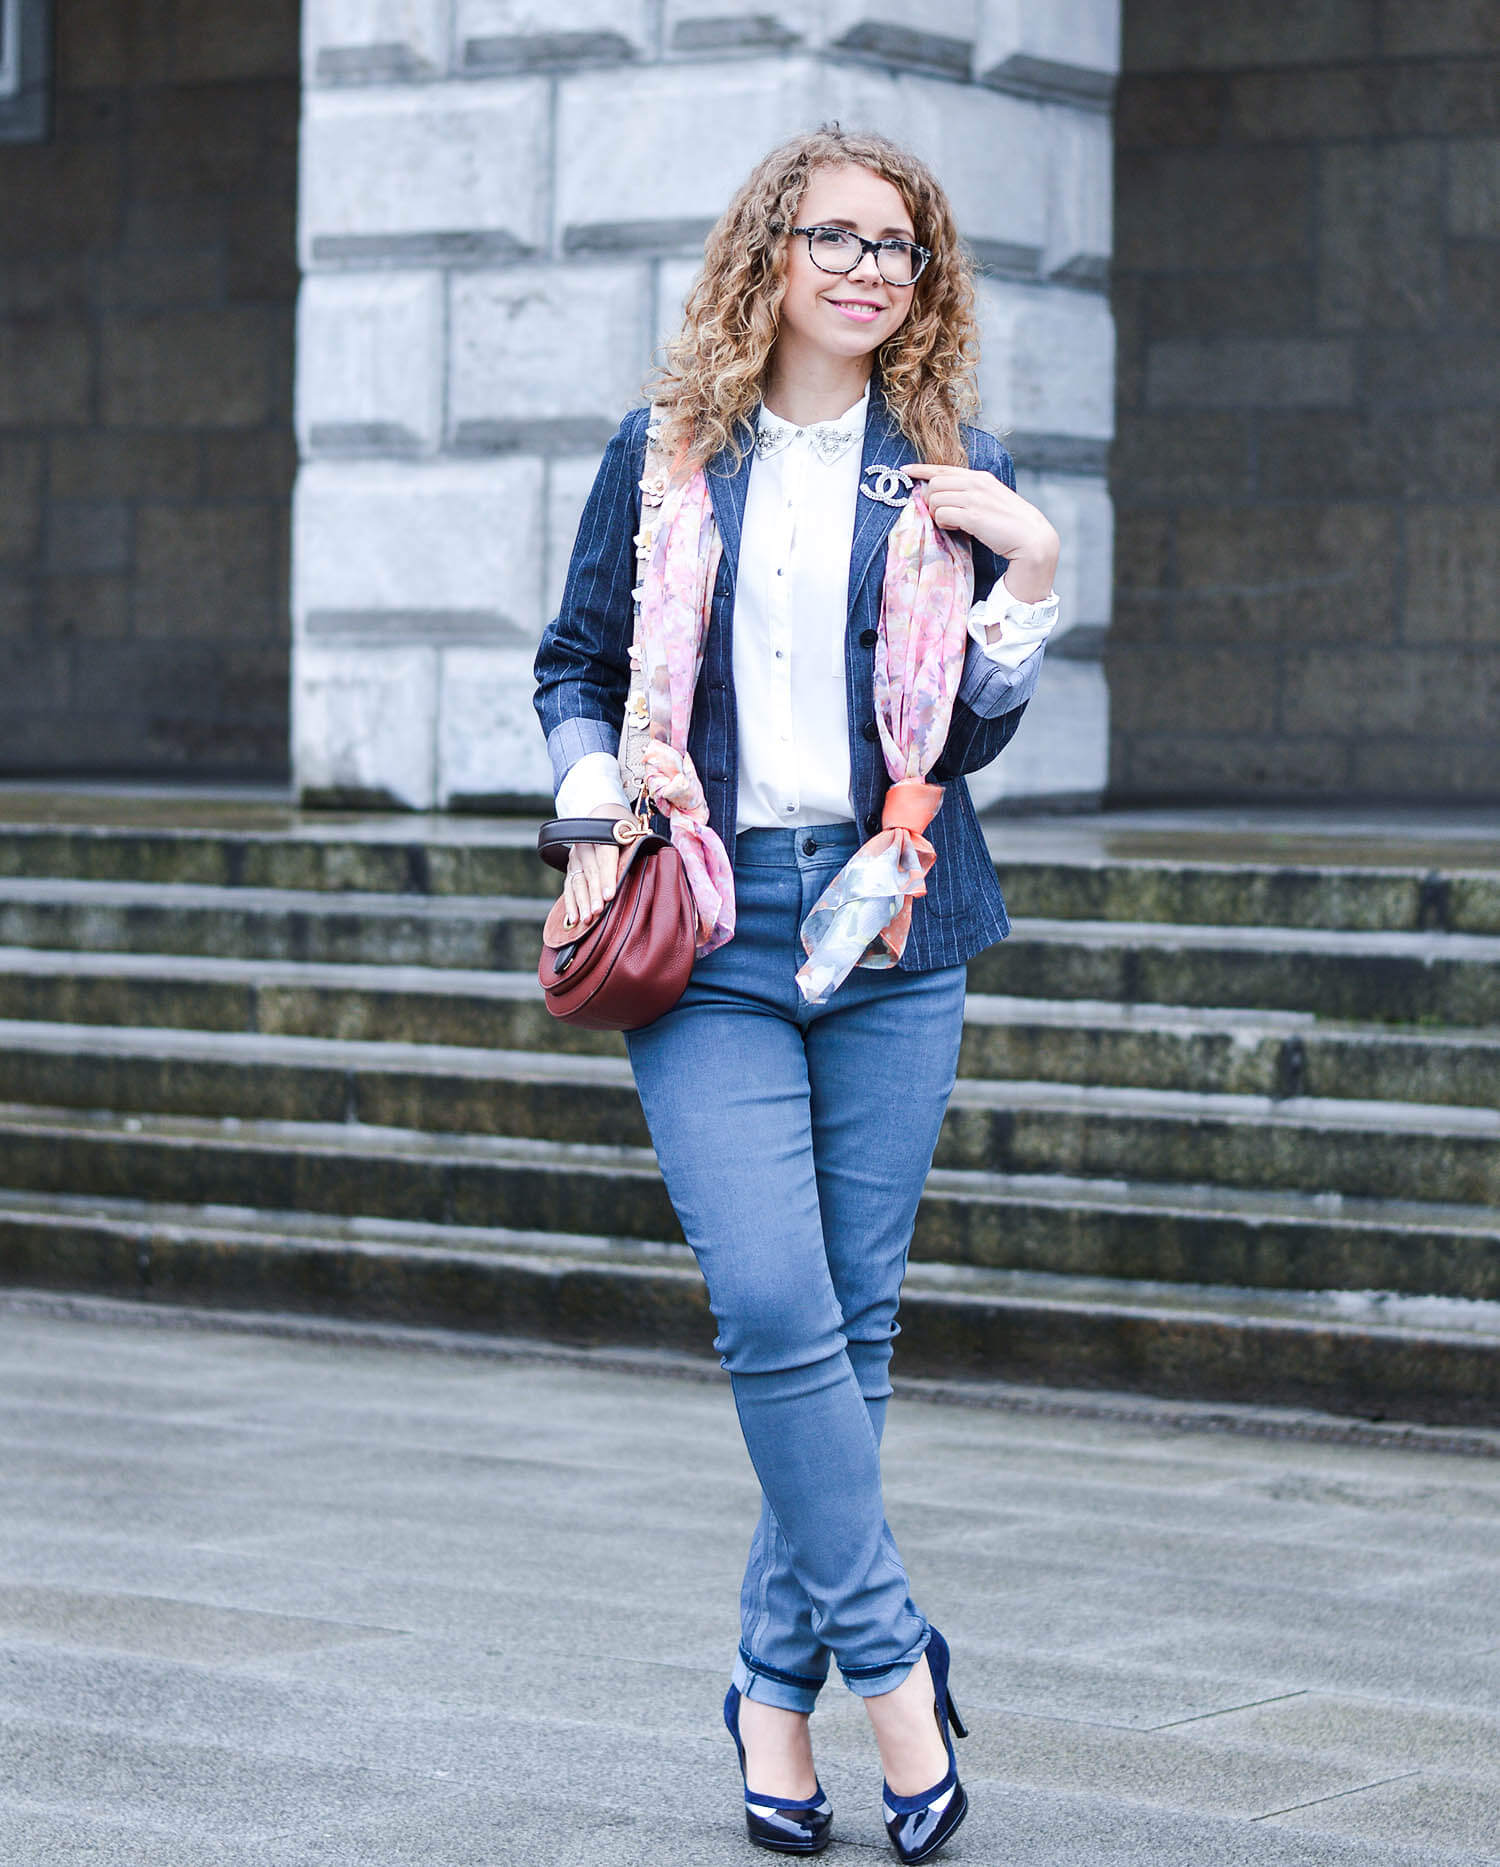 Kationette-fashionblog-Outfit-Business-Casual-michael-kors-chanel-streetstyle